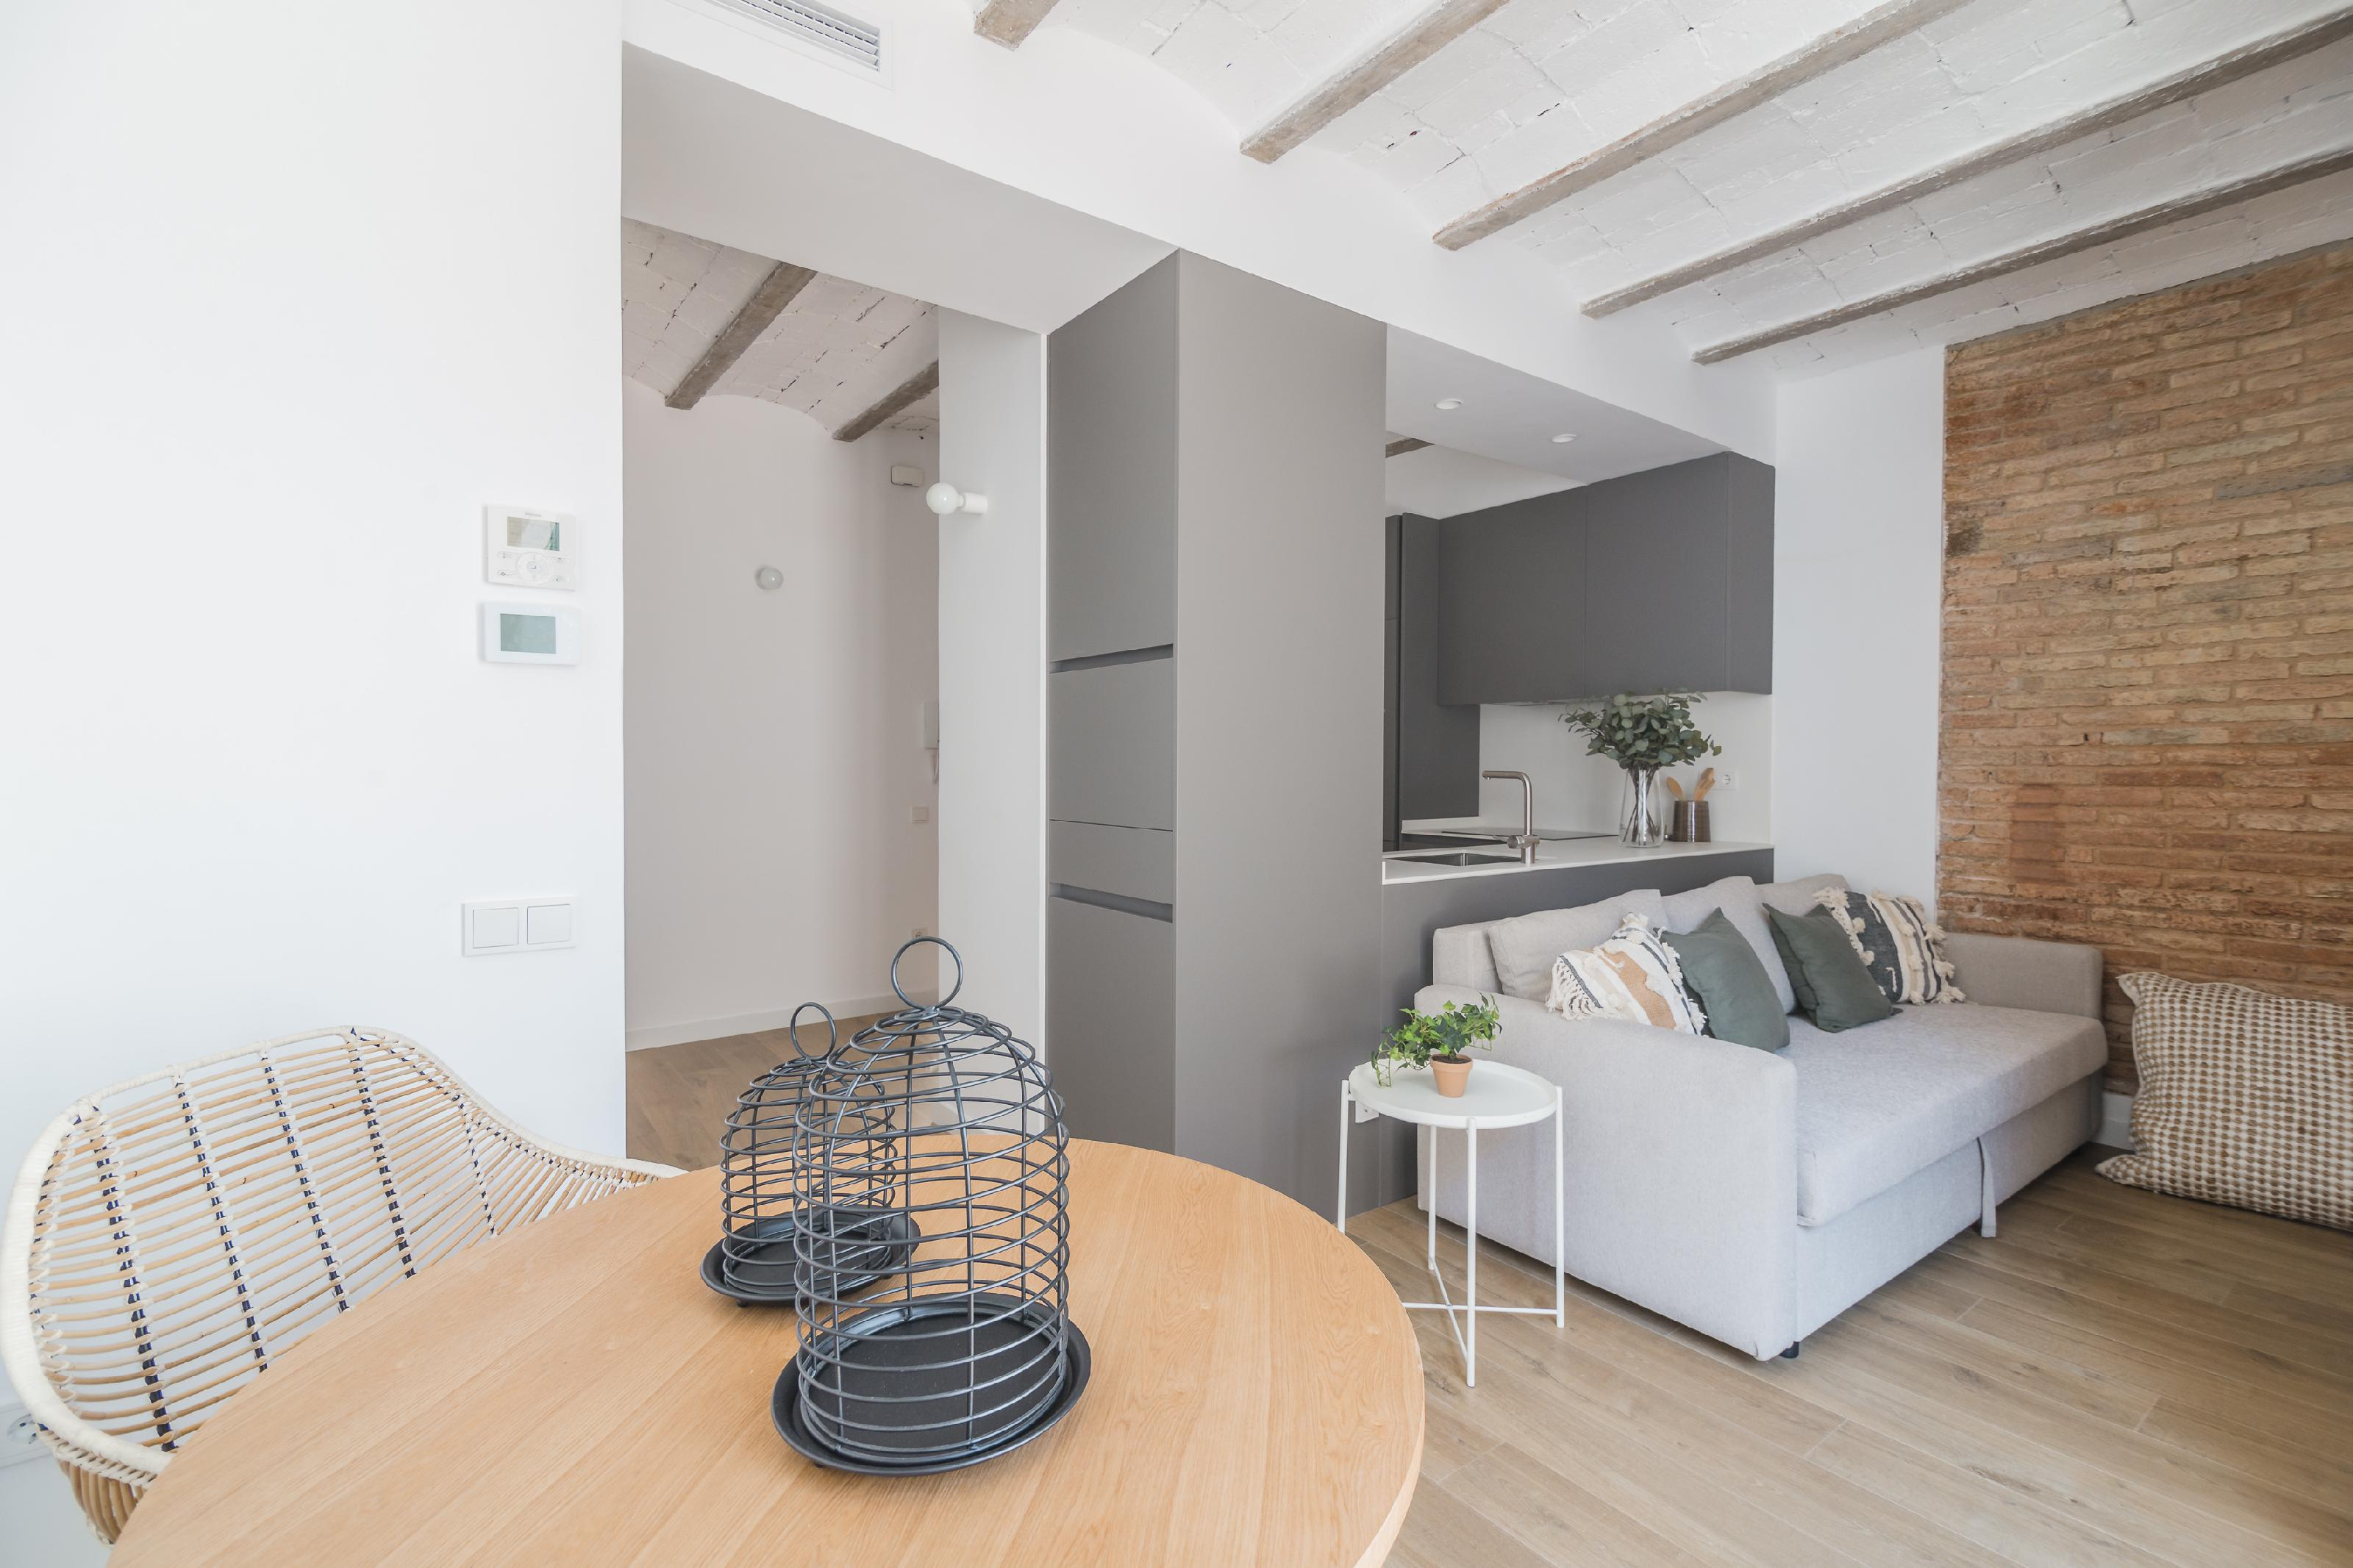 240301 Flat for sale in Gràcia, Camp Grassot and Gràcia Nova 7